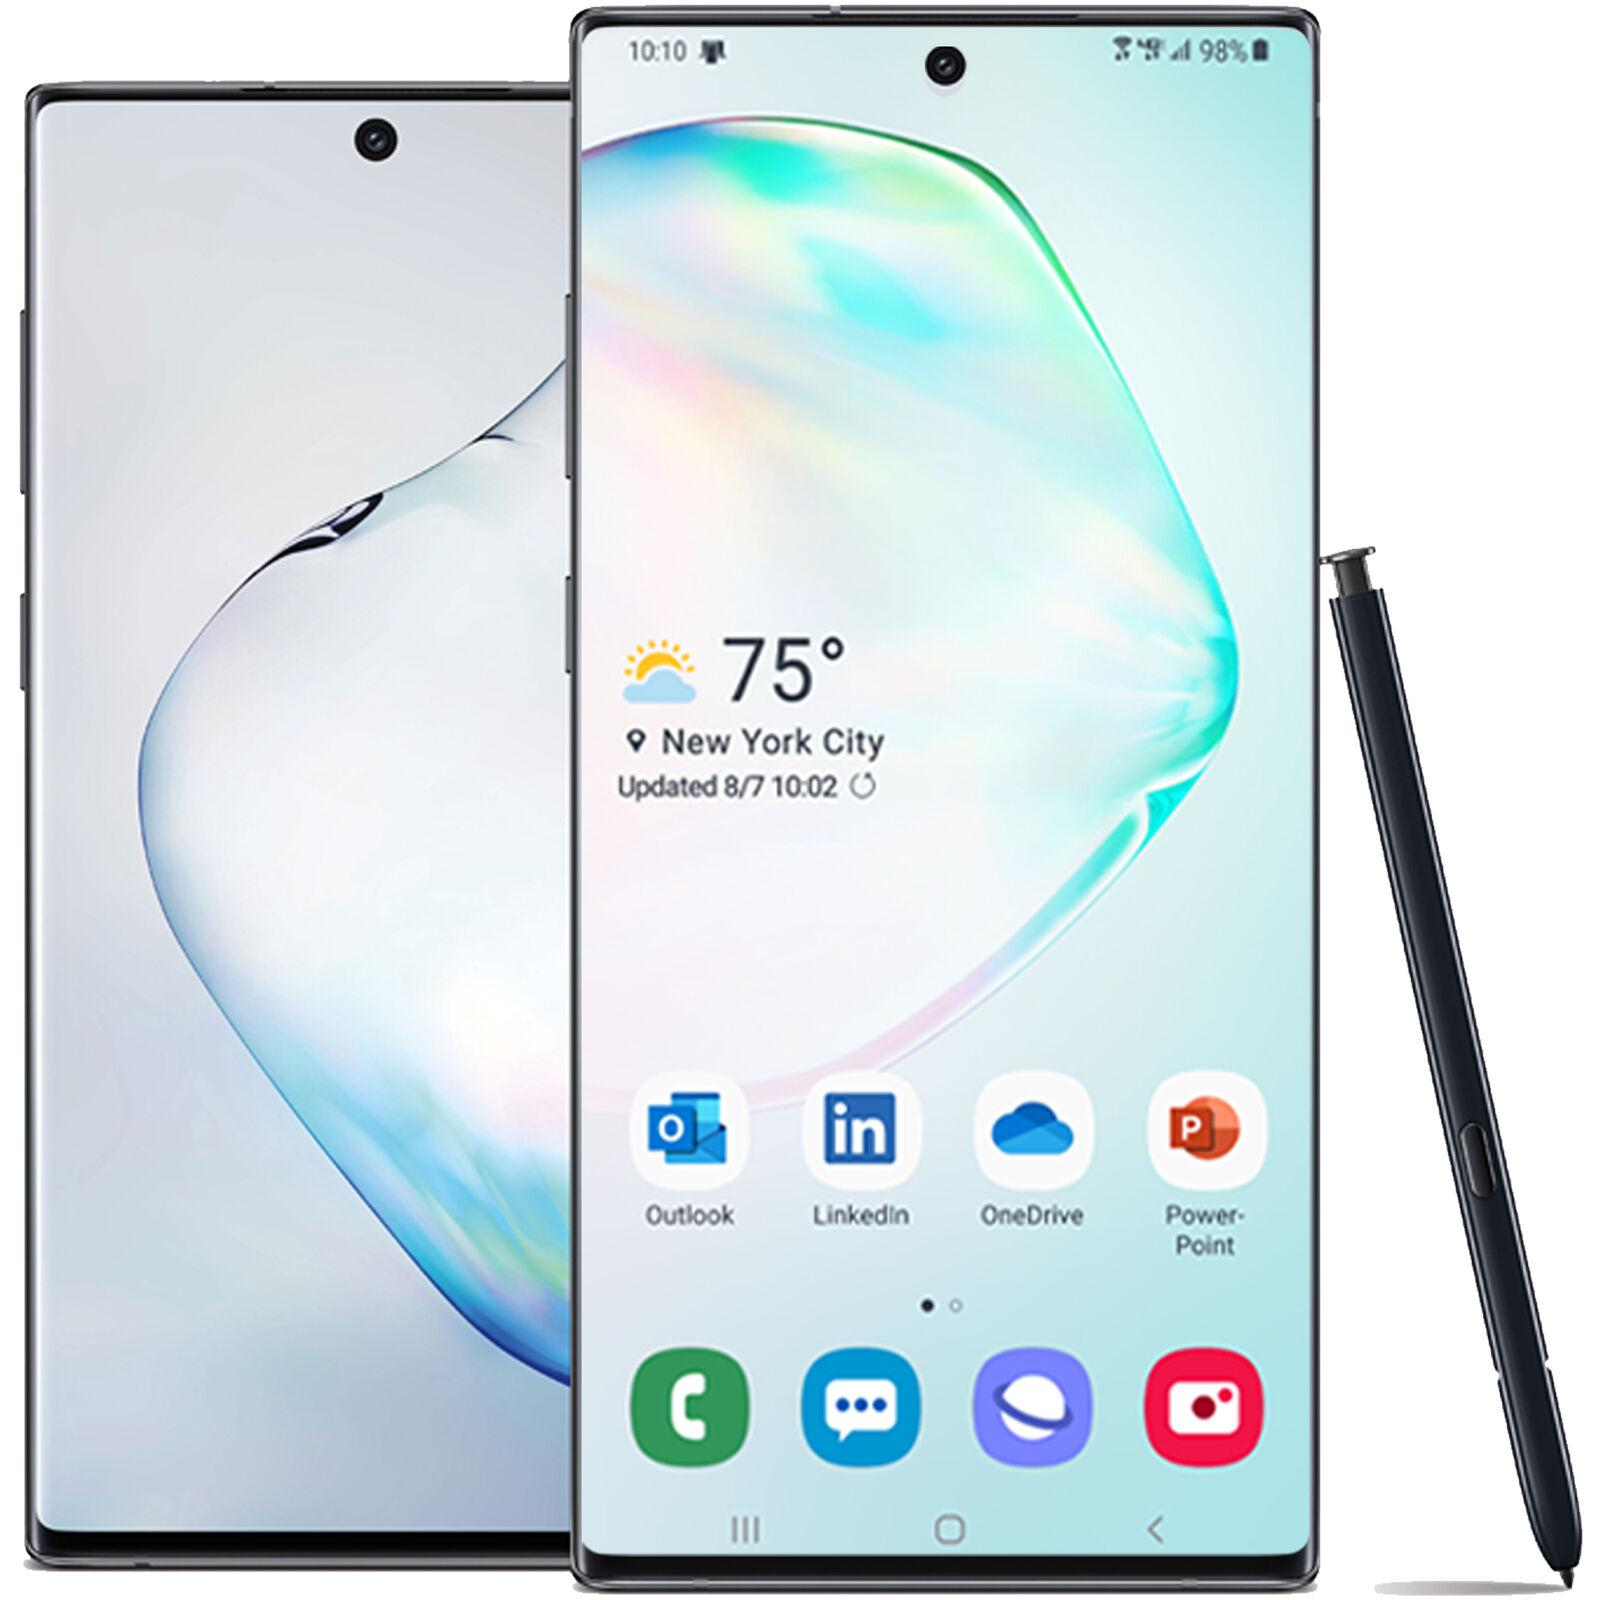 Samsung Galaxy Note 10 256GB Unlocked Smartphone for $549.99 Shipped